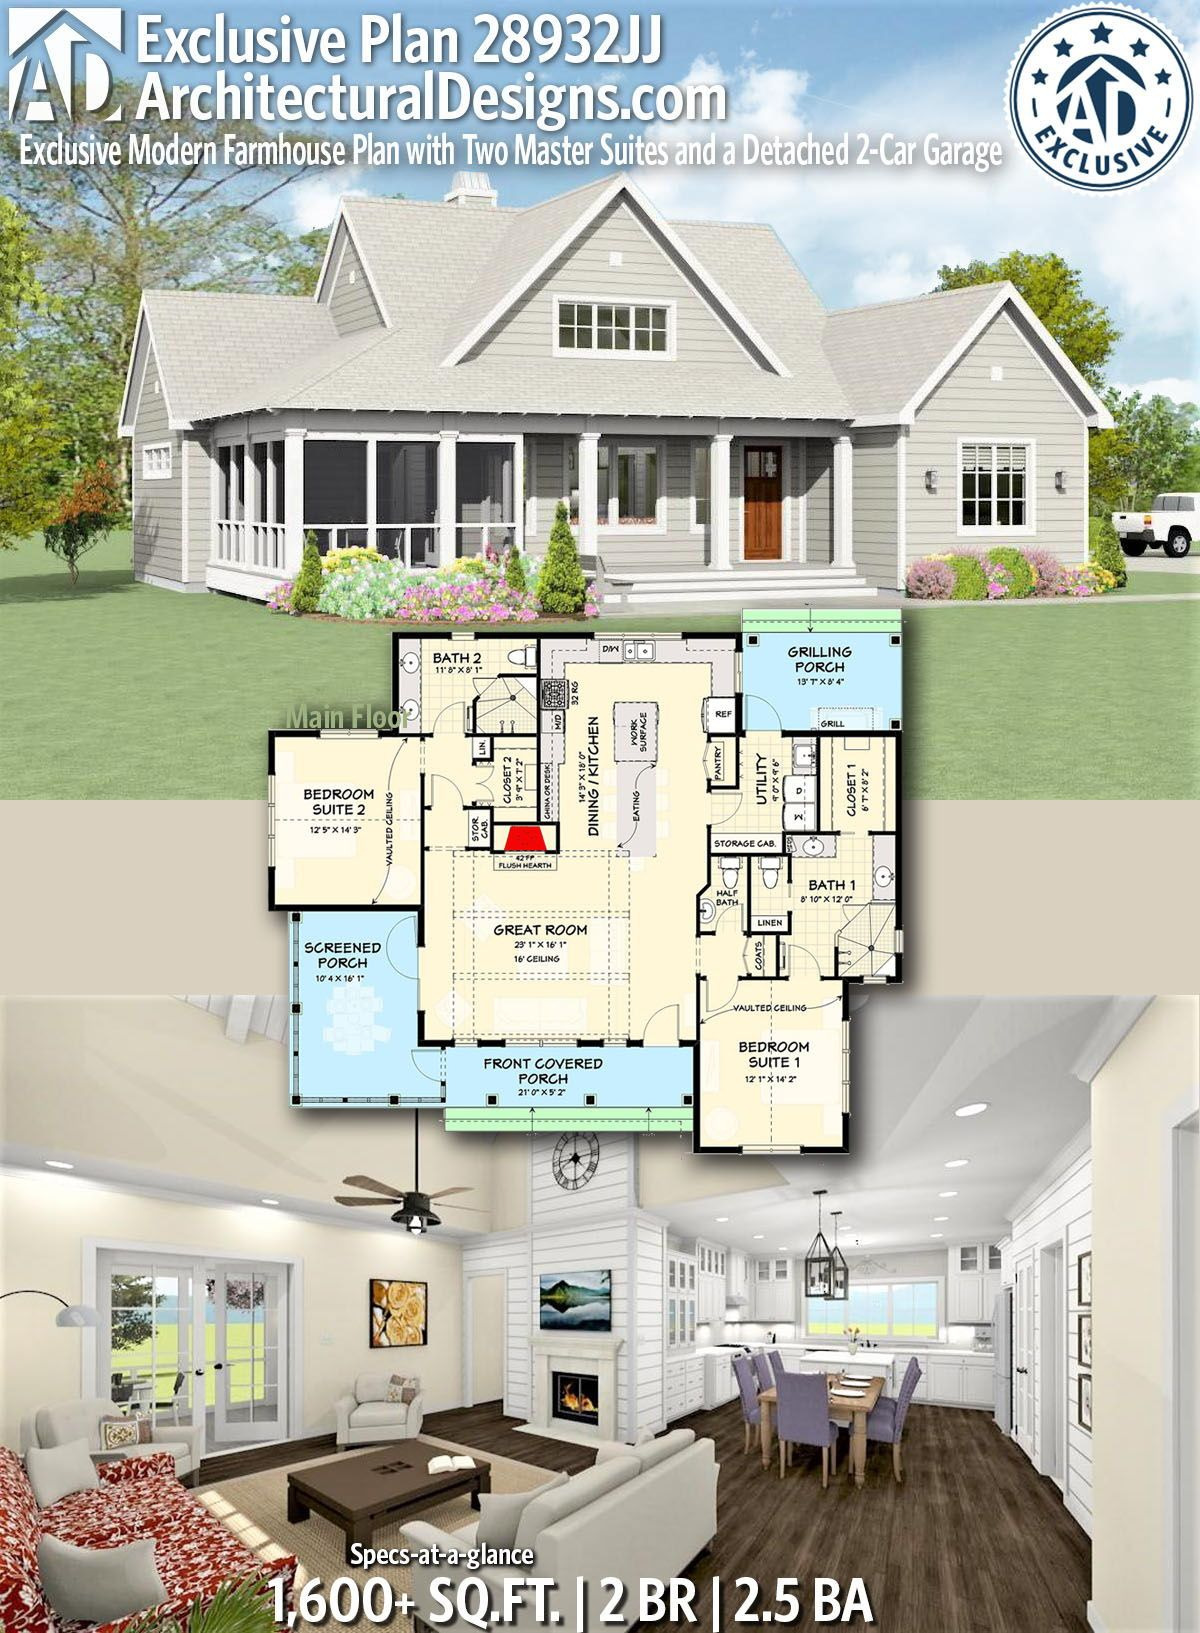 Add On House Plans Best Of Plan Jj Exclusive Modern Farmhouse Plan with Two